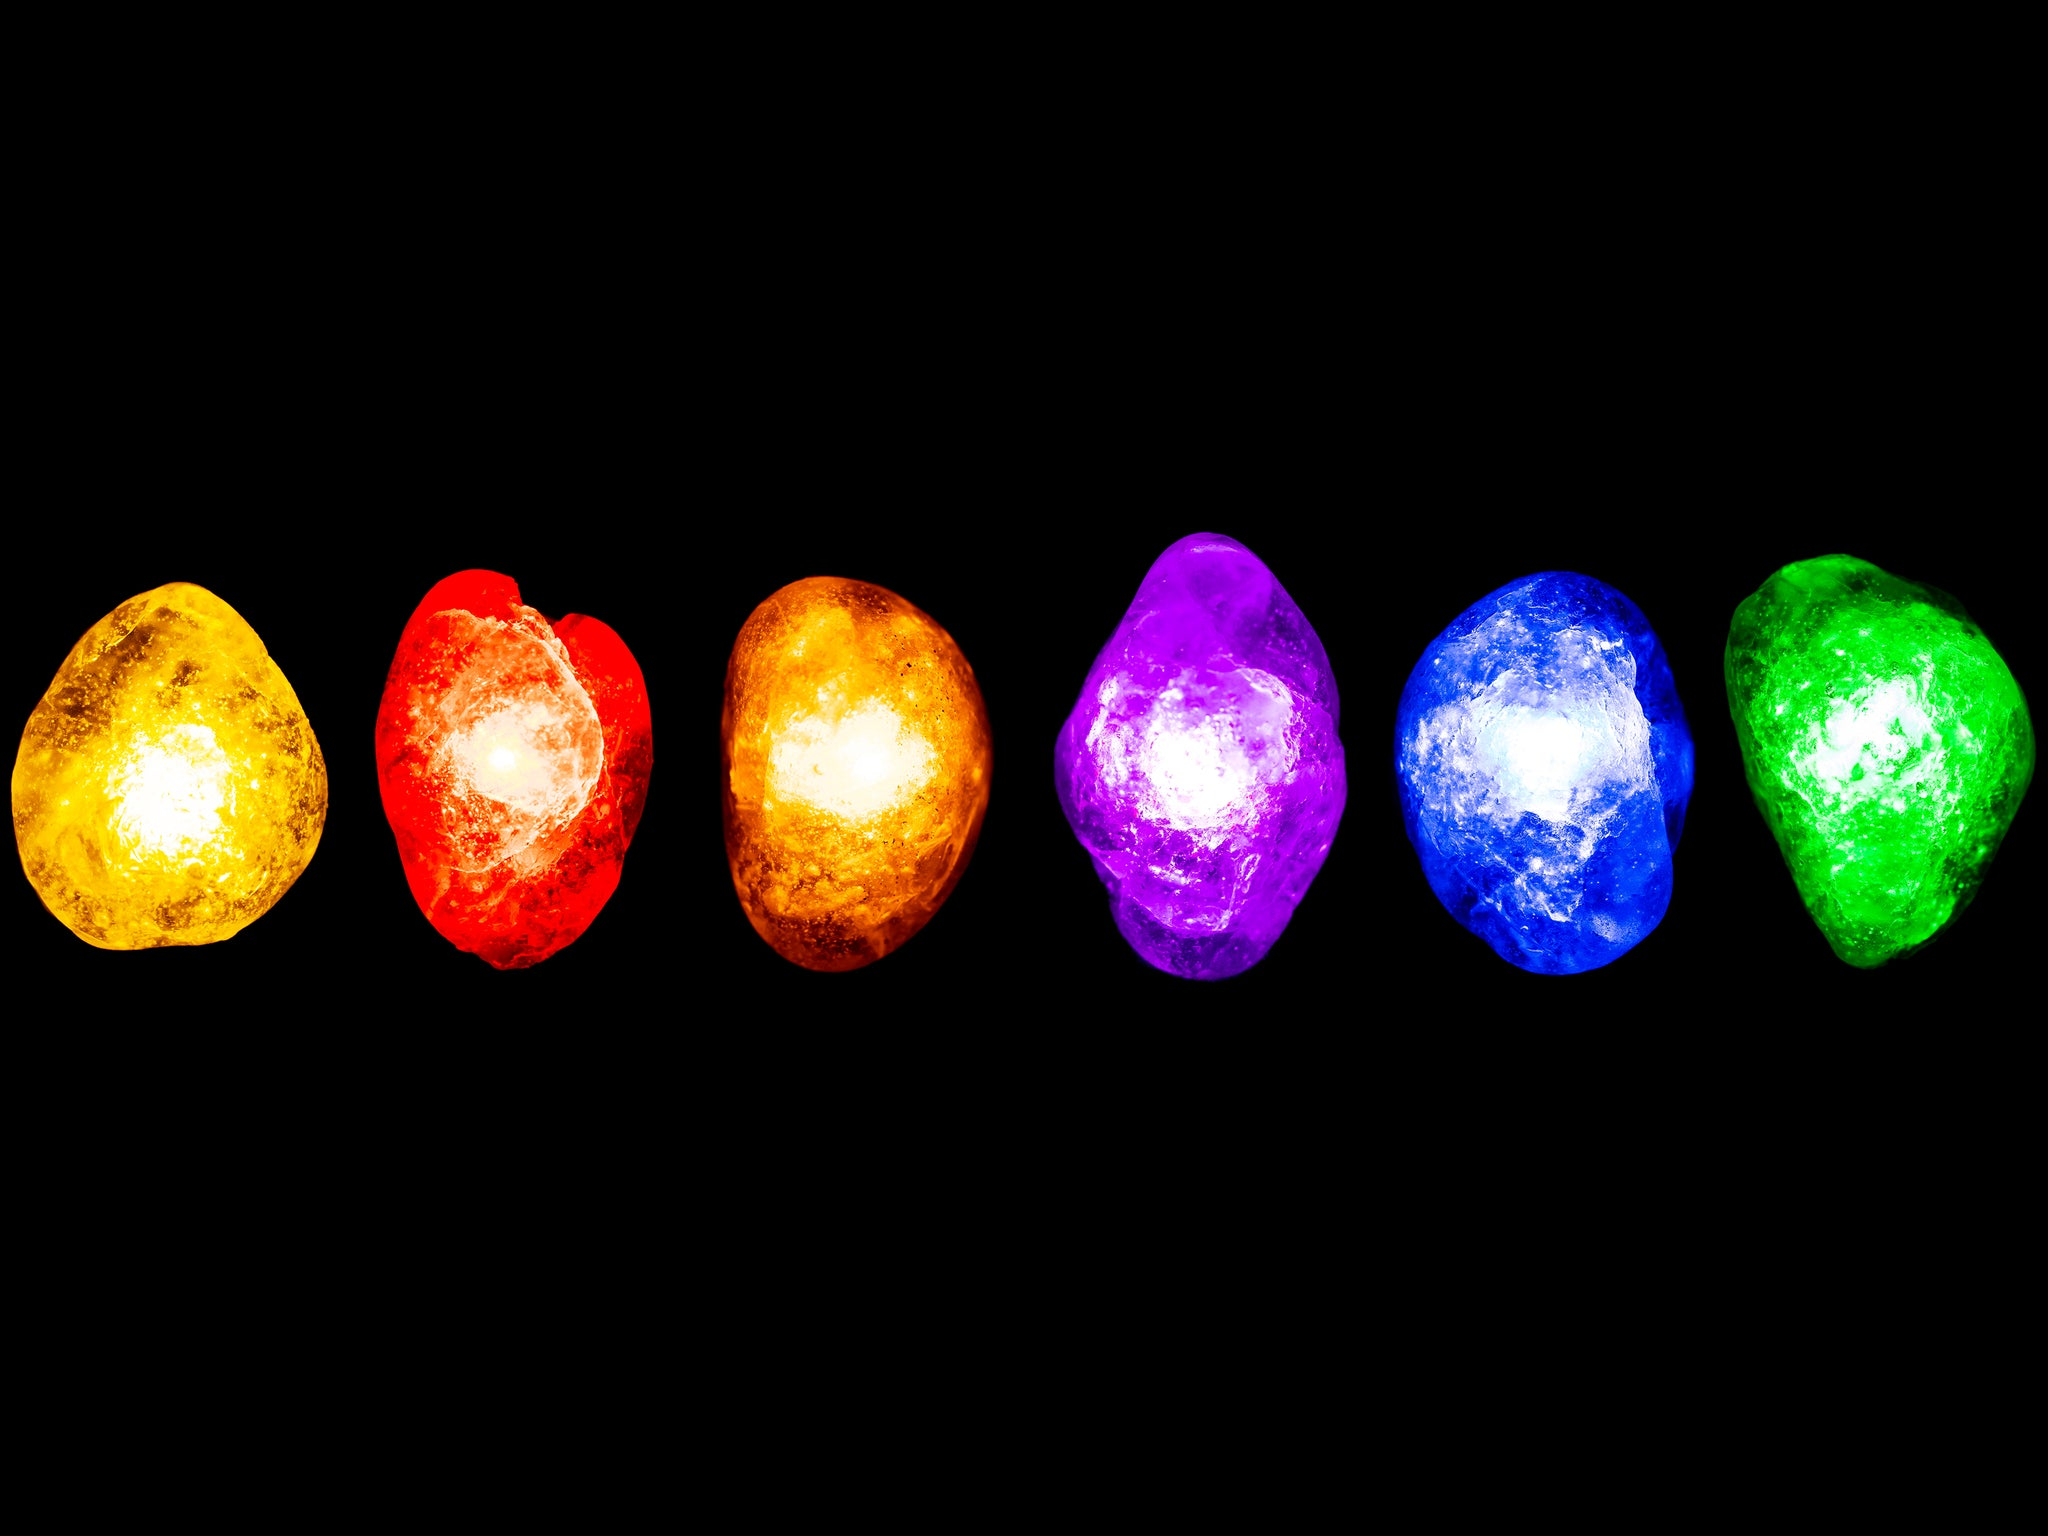 [pic of finished infinity stones]